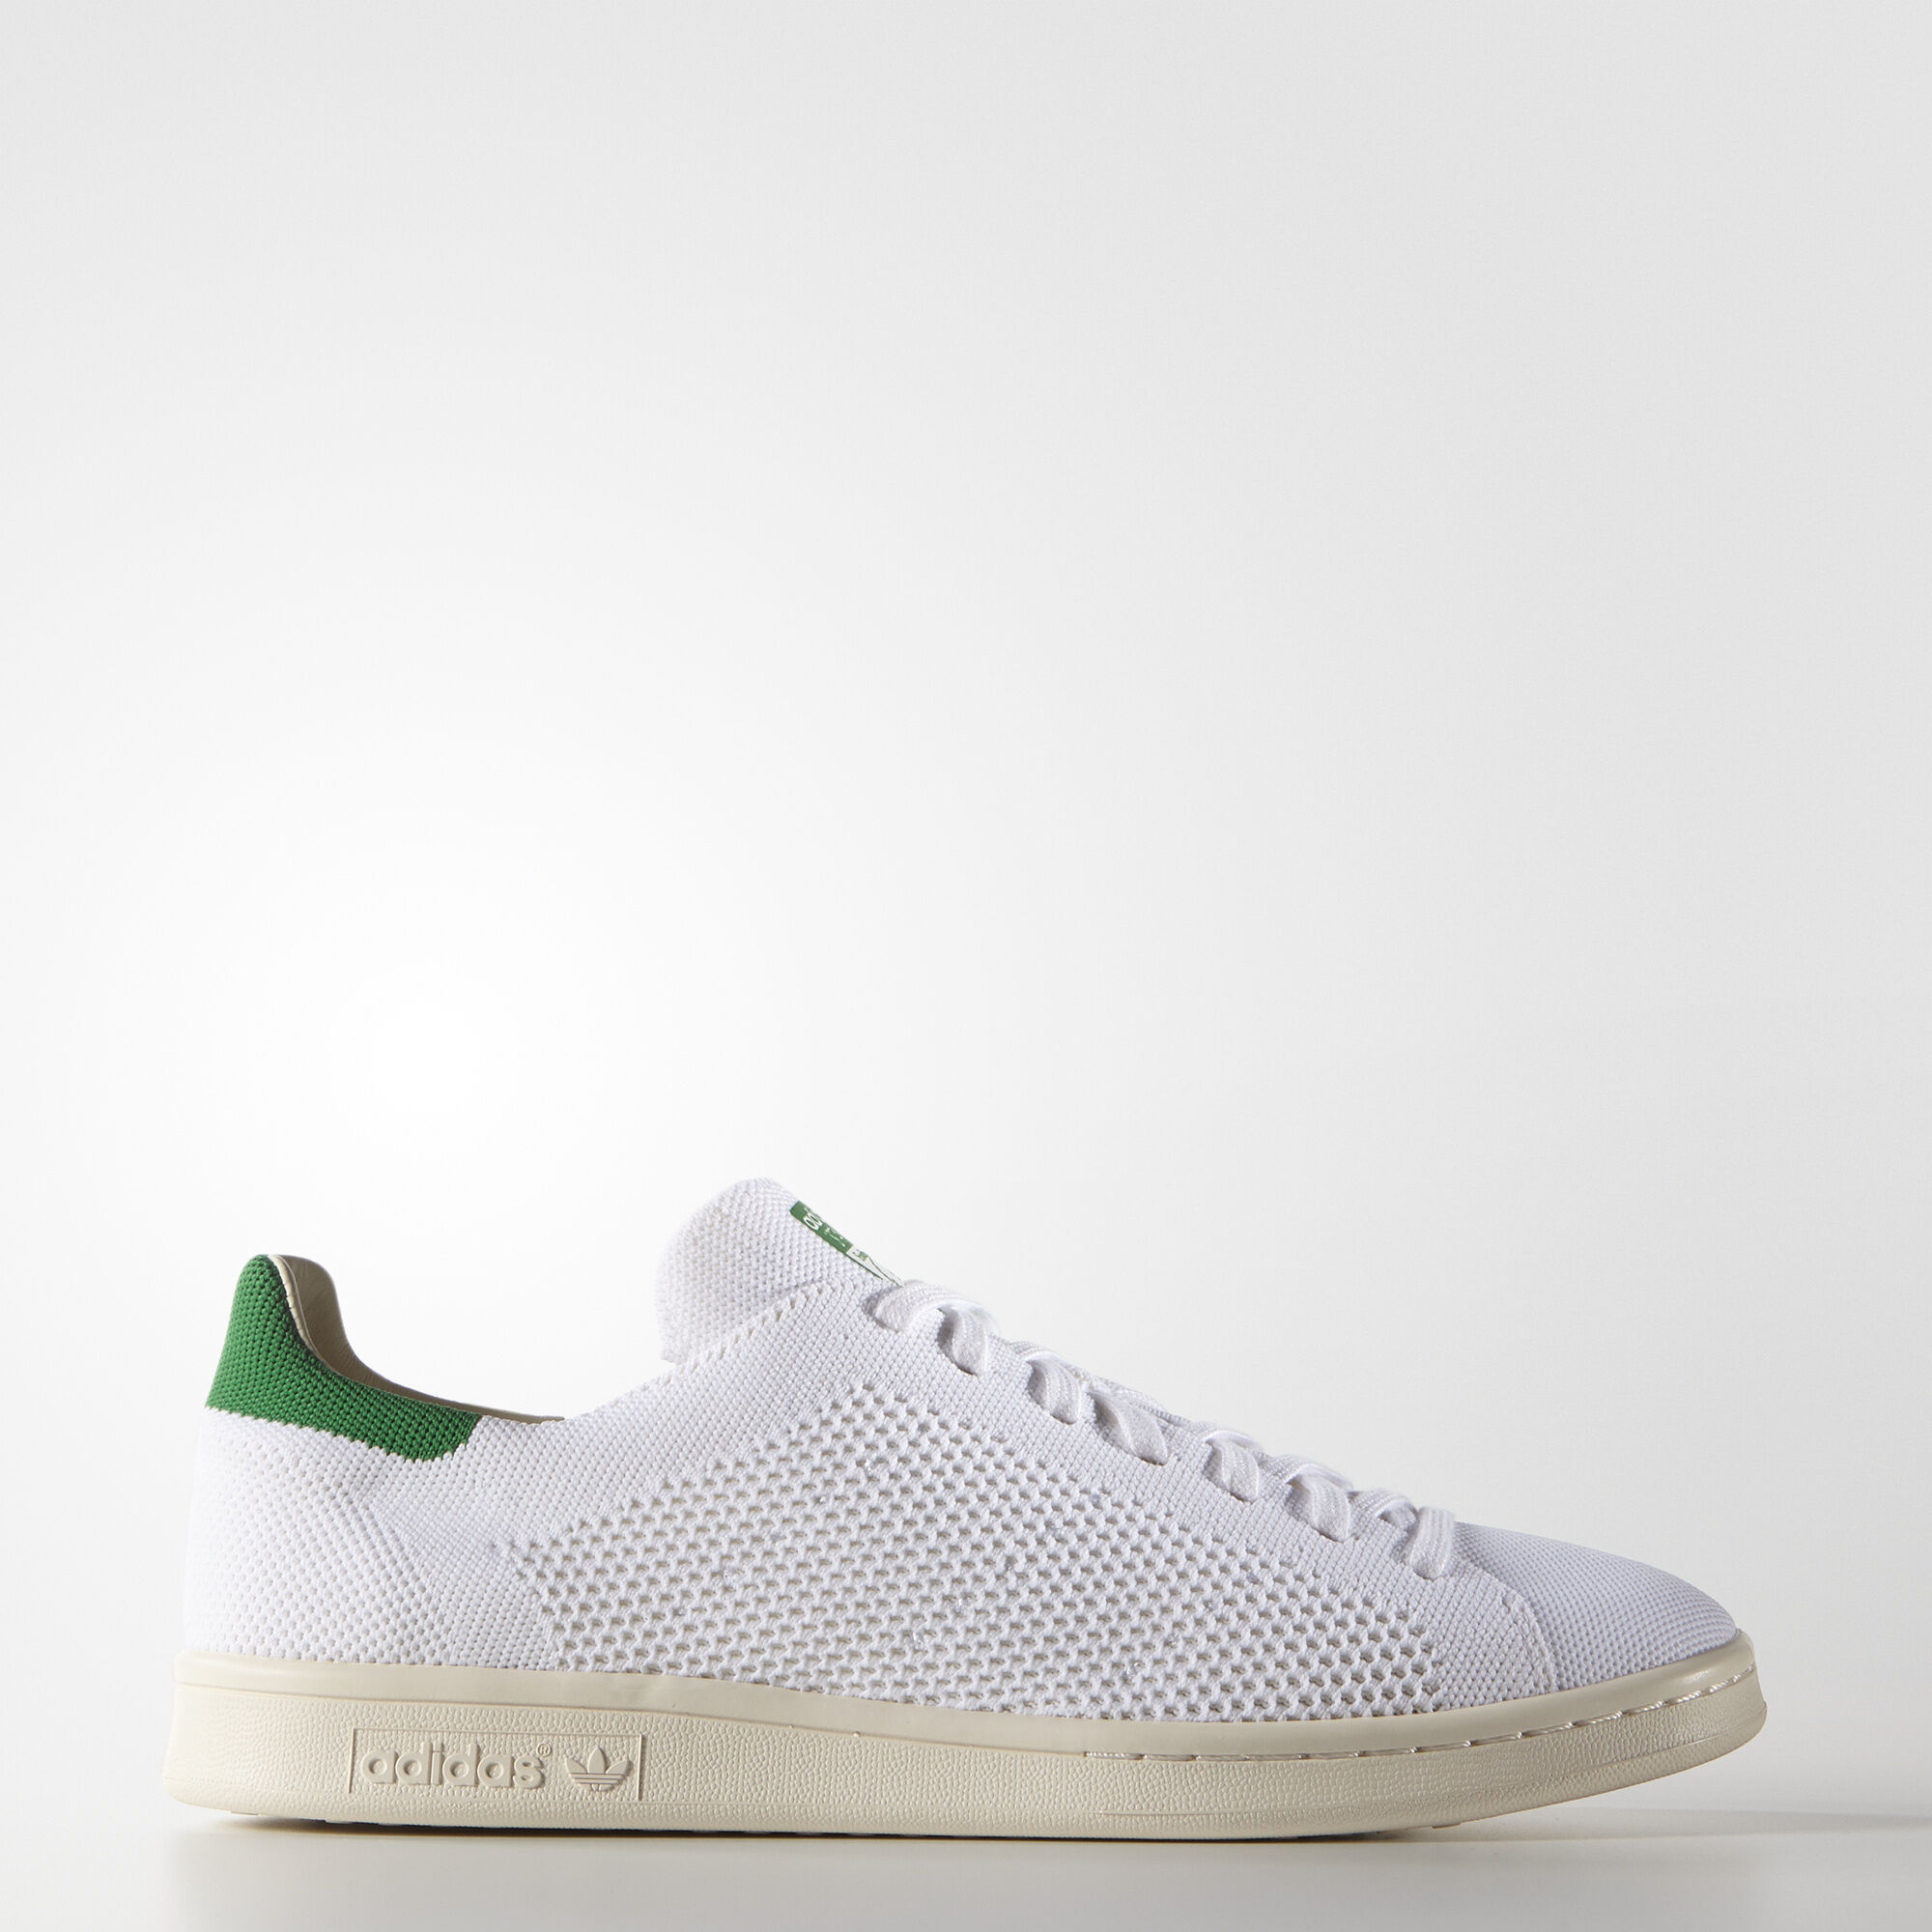 Adidas stan smith primeknit Uomo 2015 on sale >off45%)